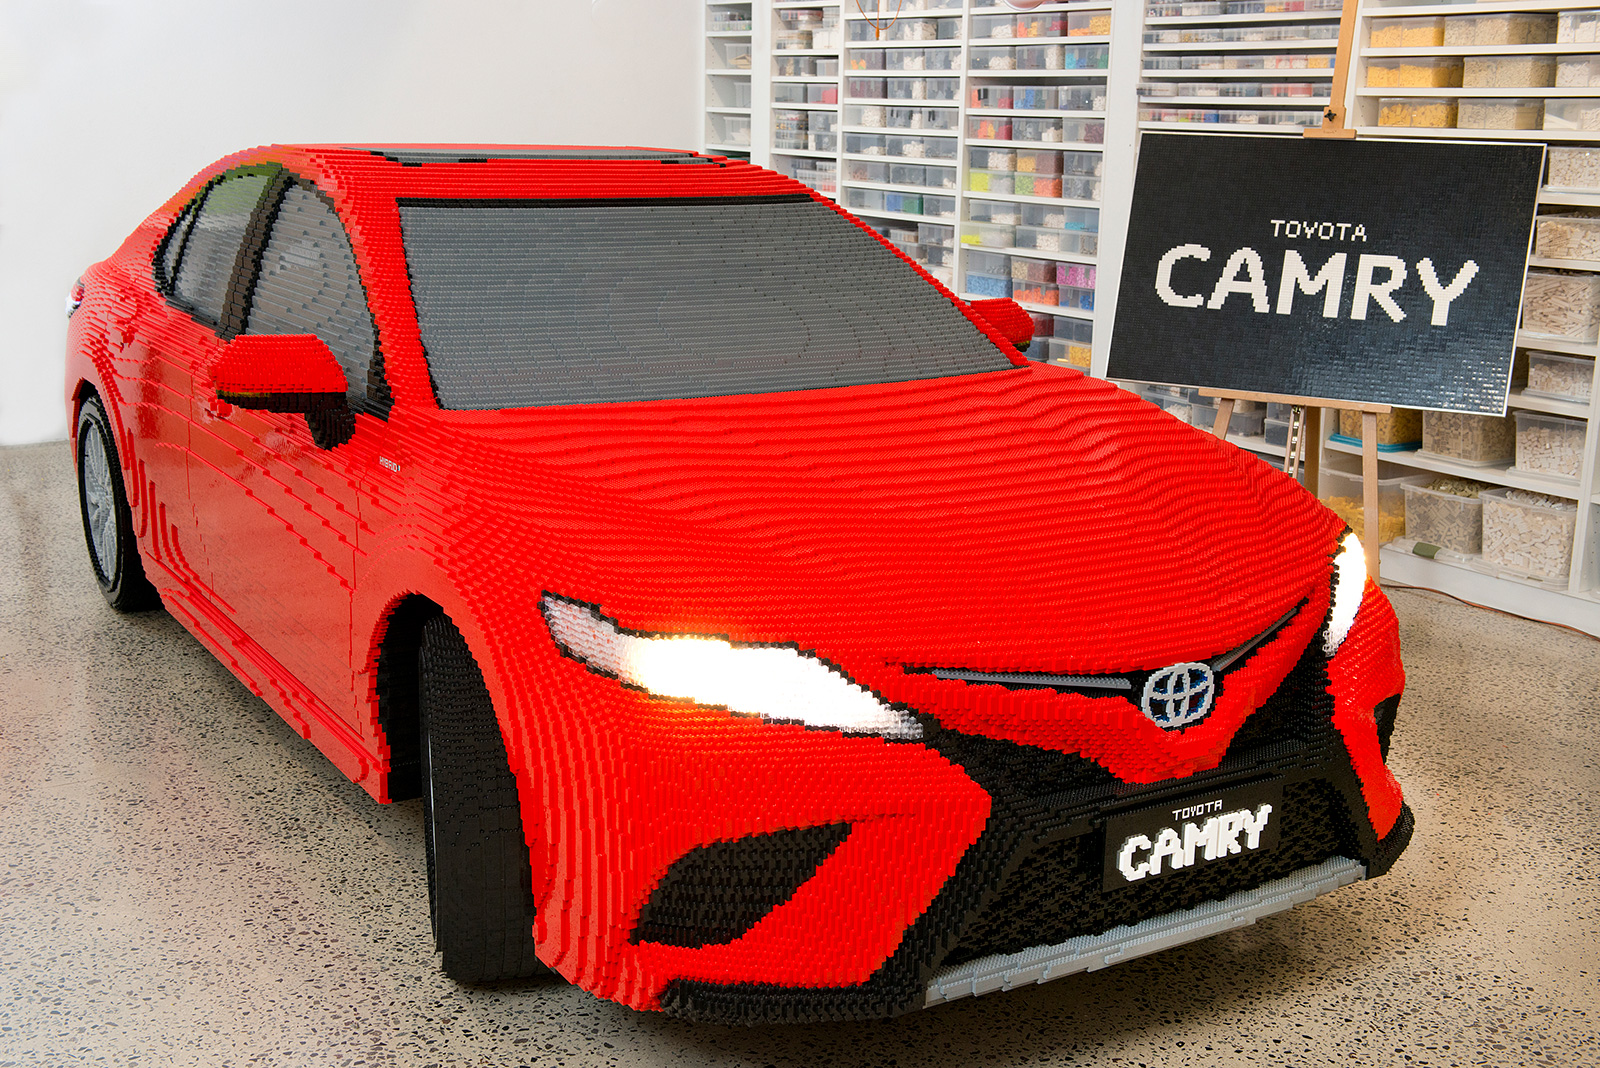 Lego Builds A Life-Size Toyota Camry Out Of Plastic Bricks And It's